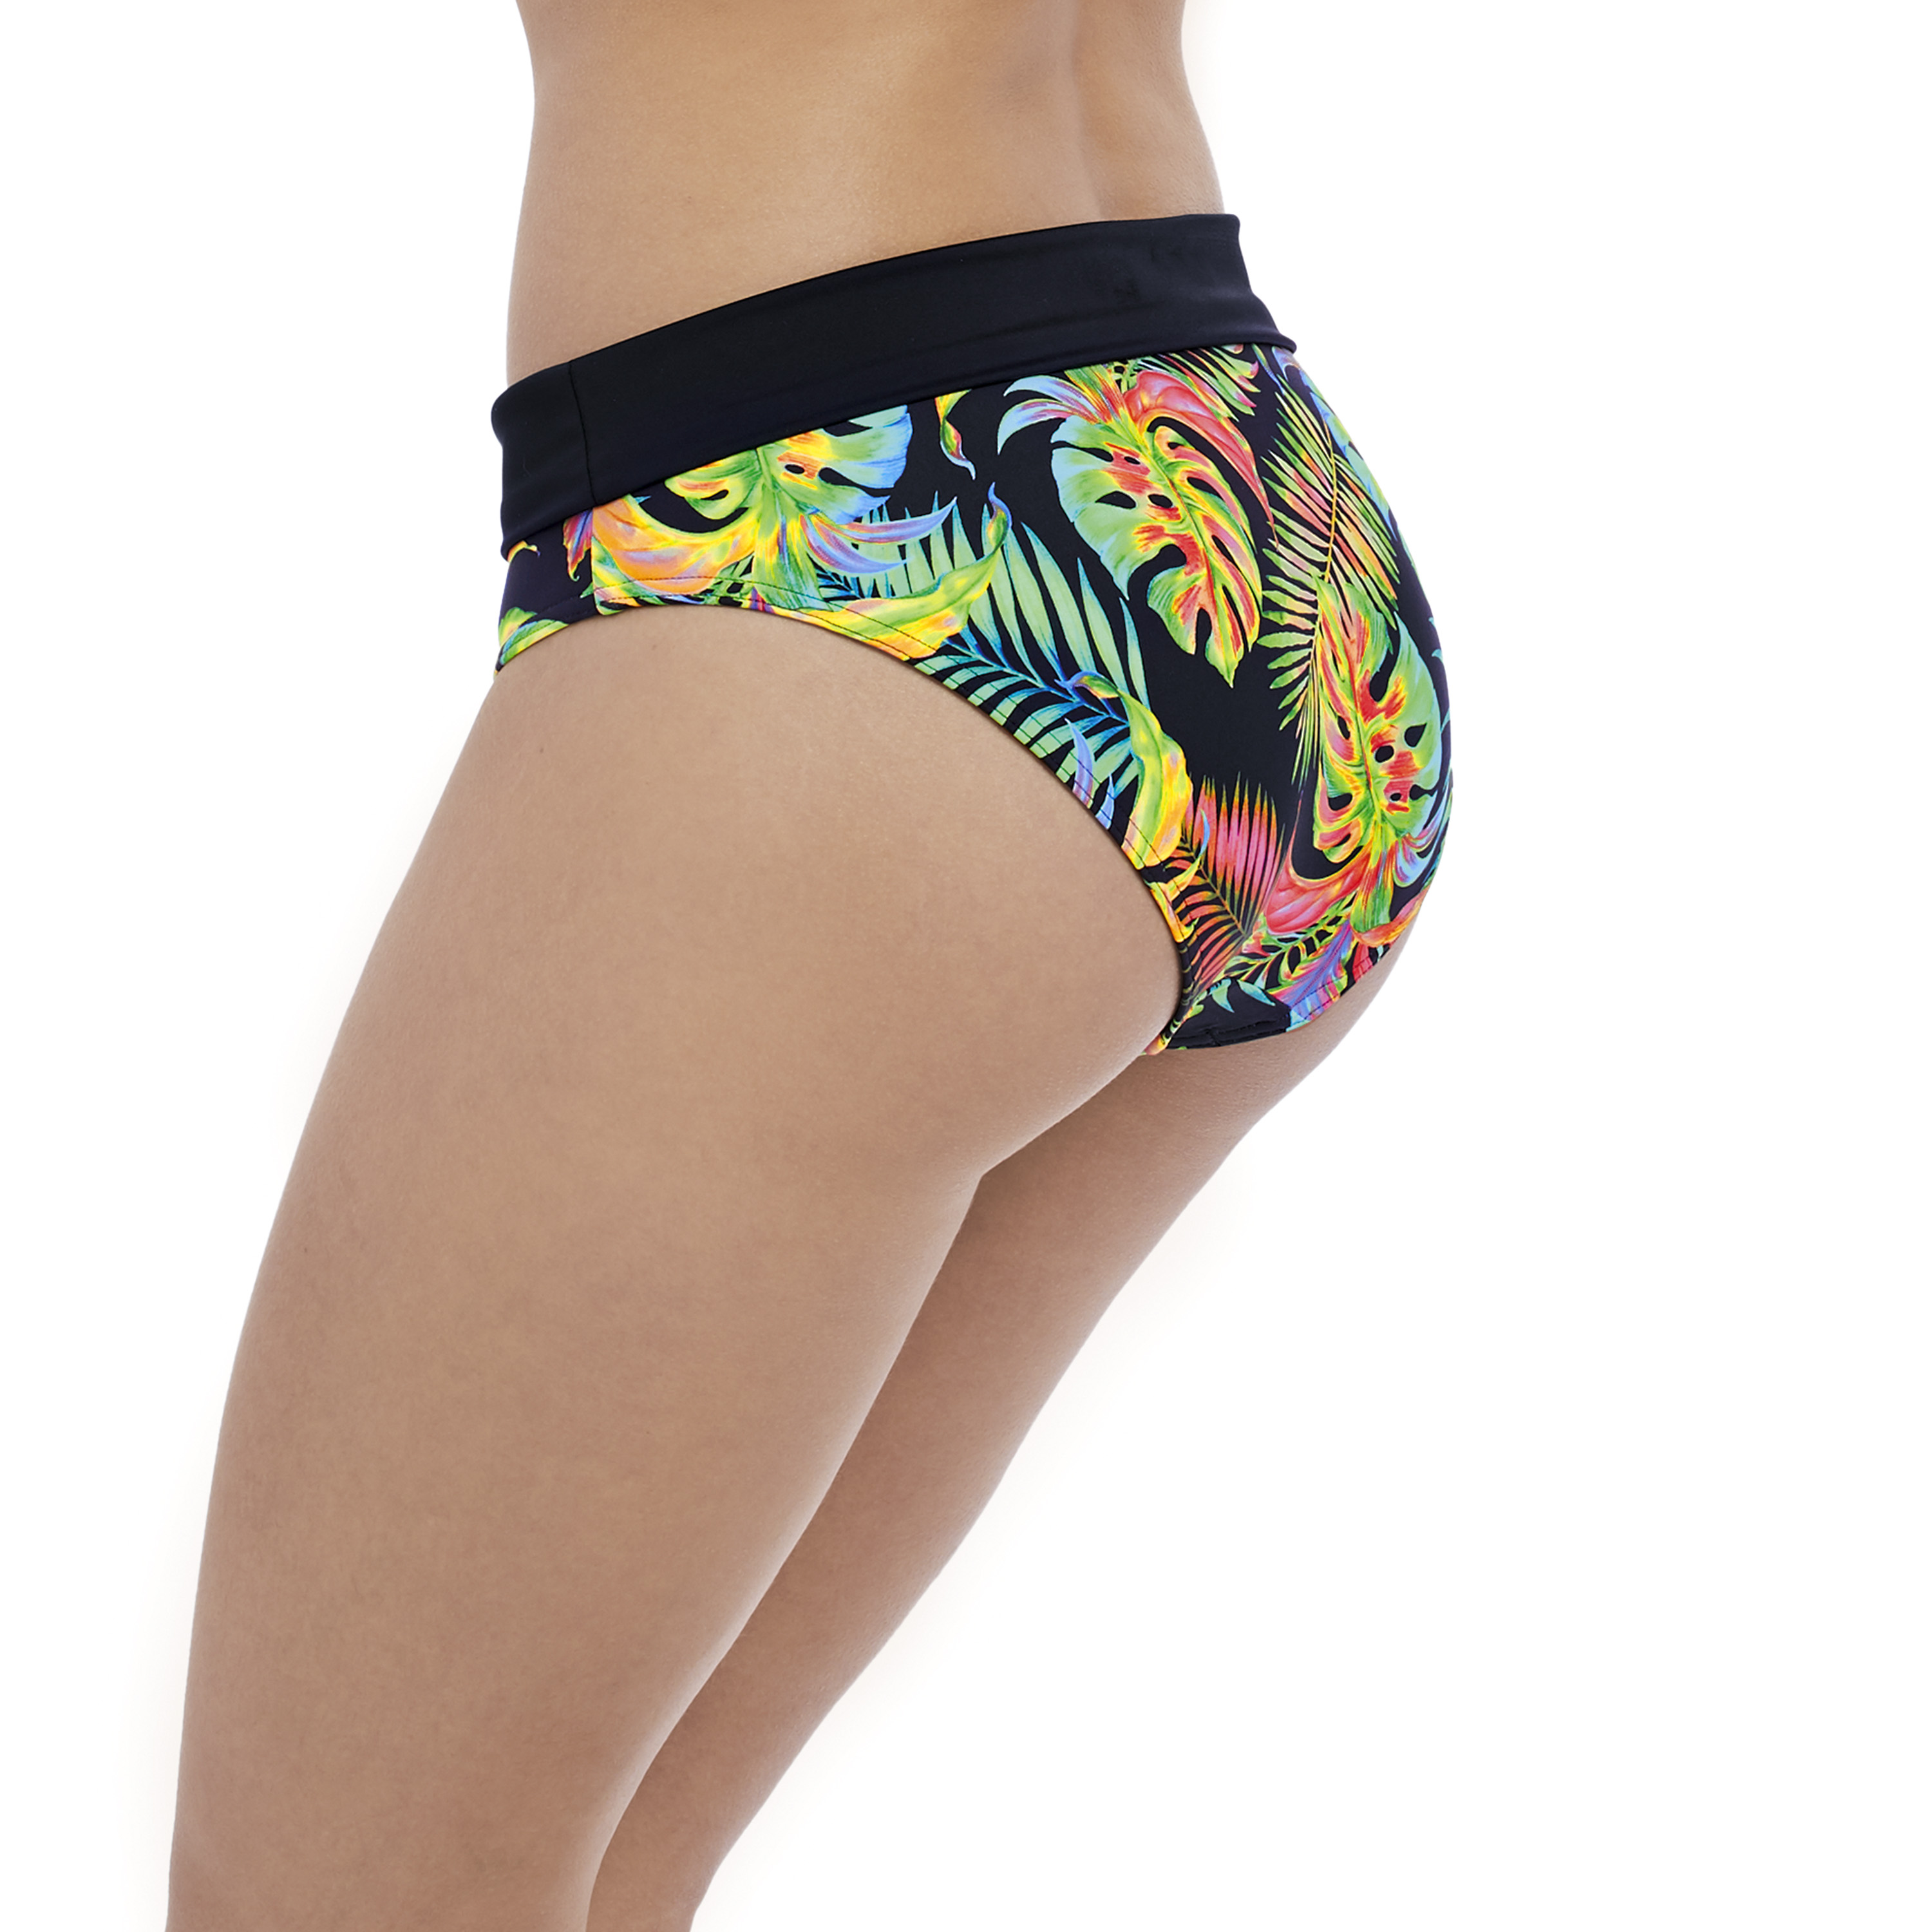 Freya Electro Beach brief